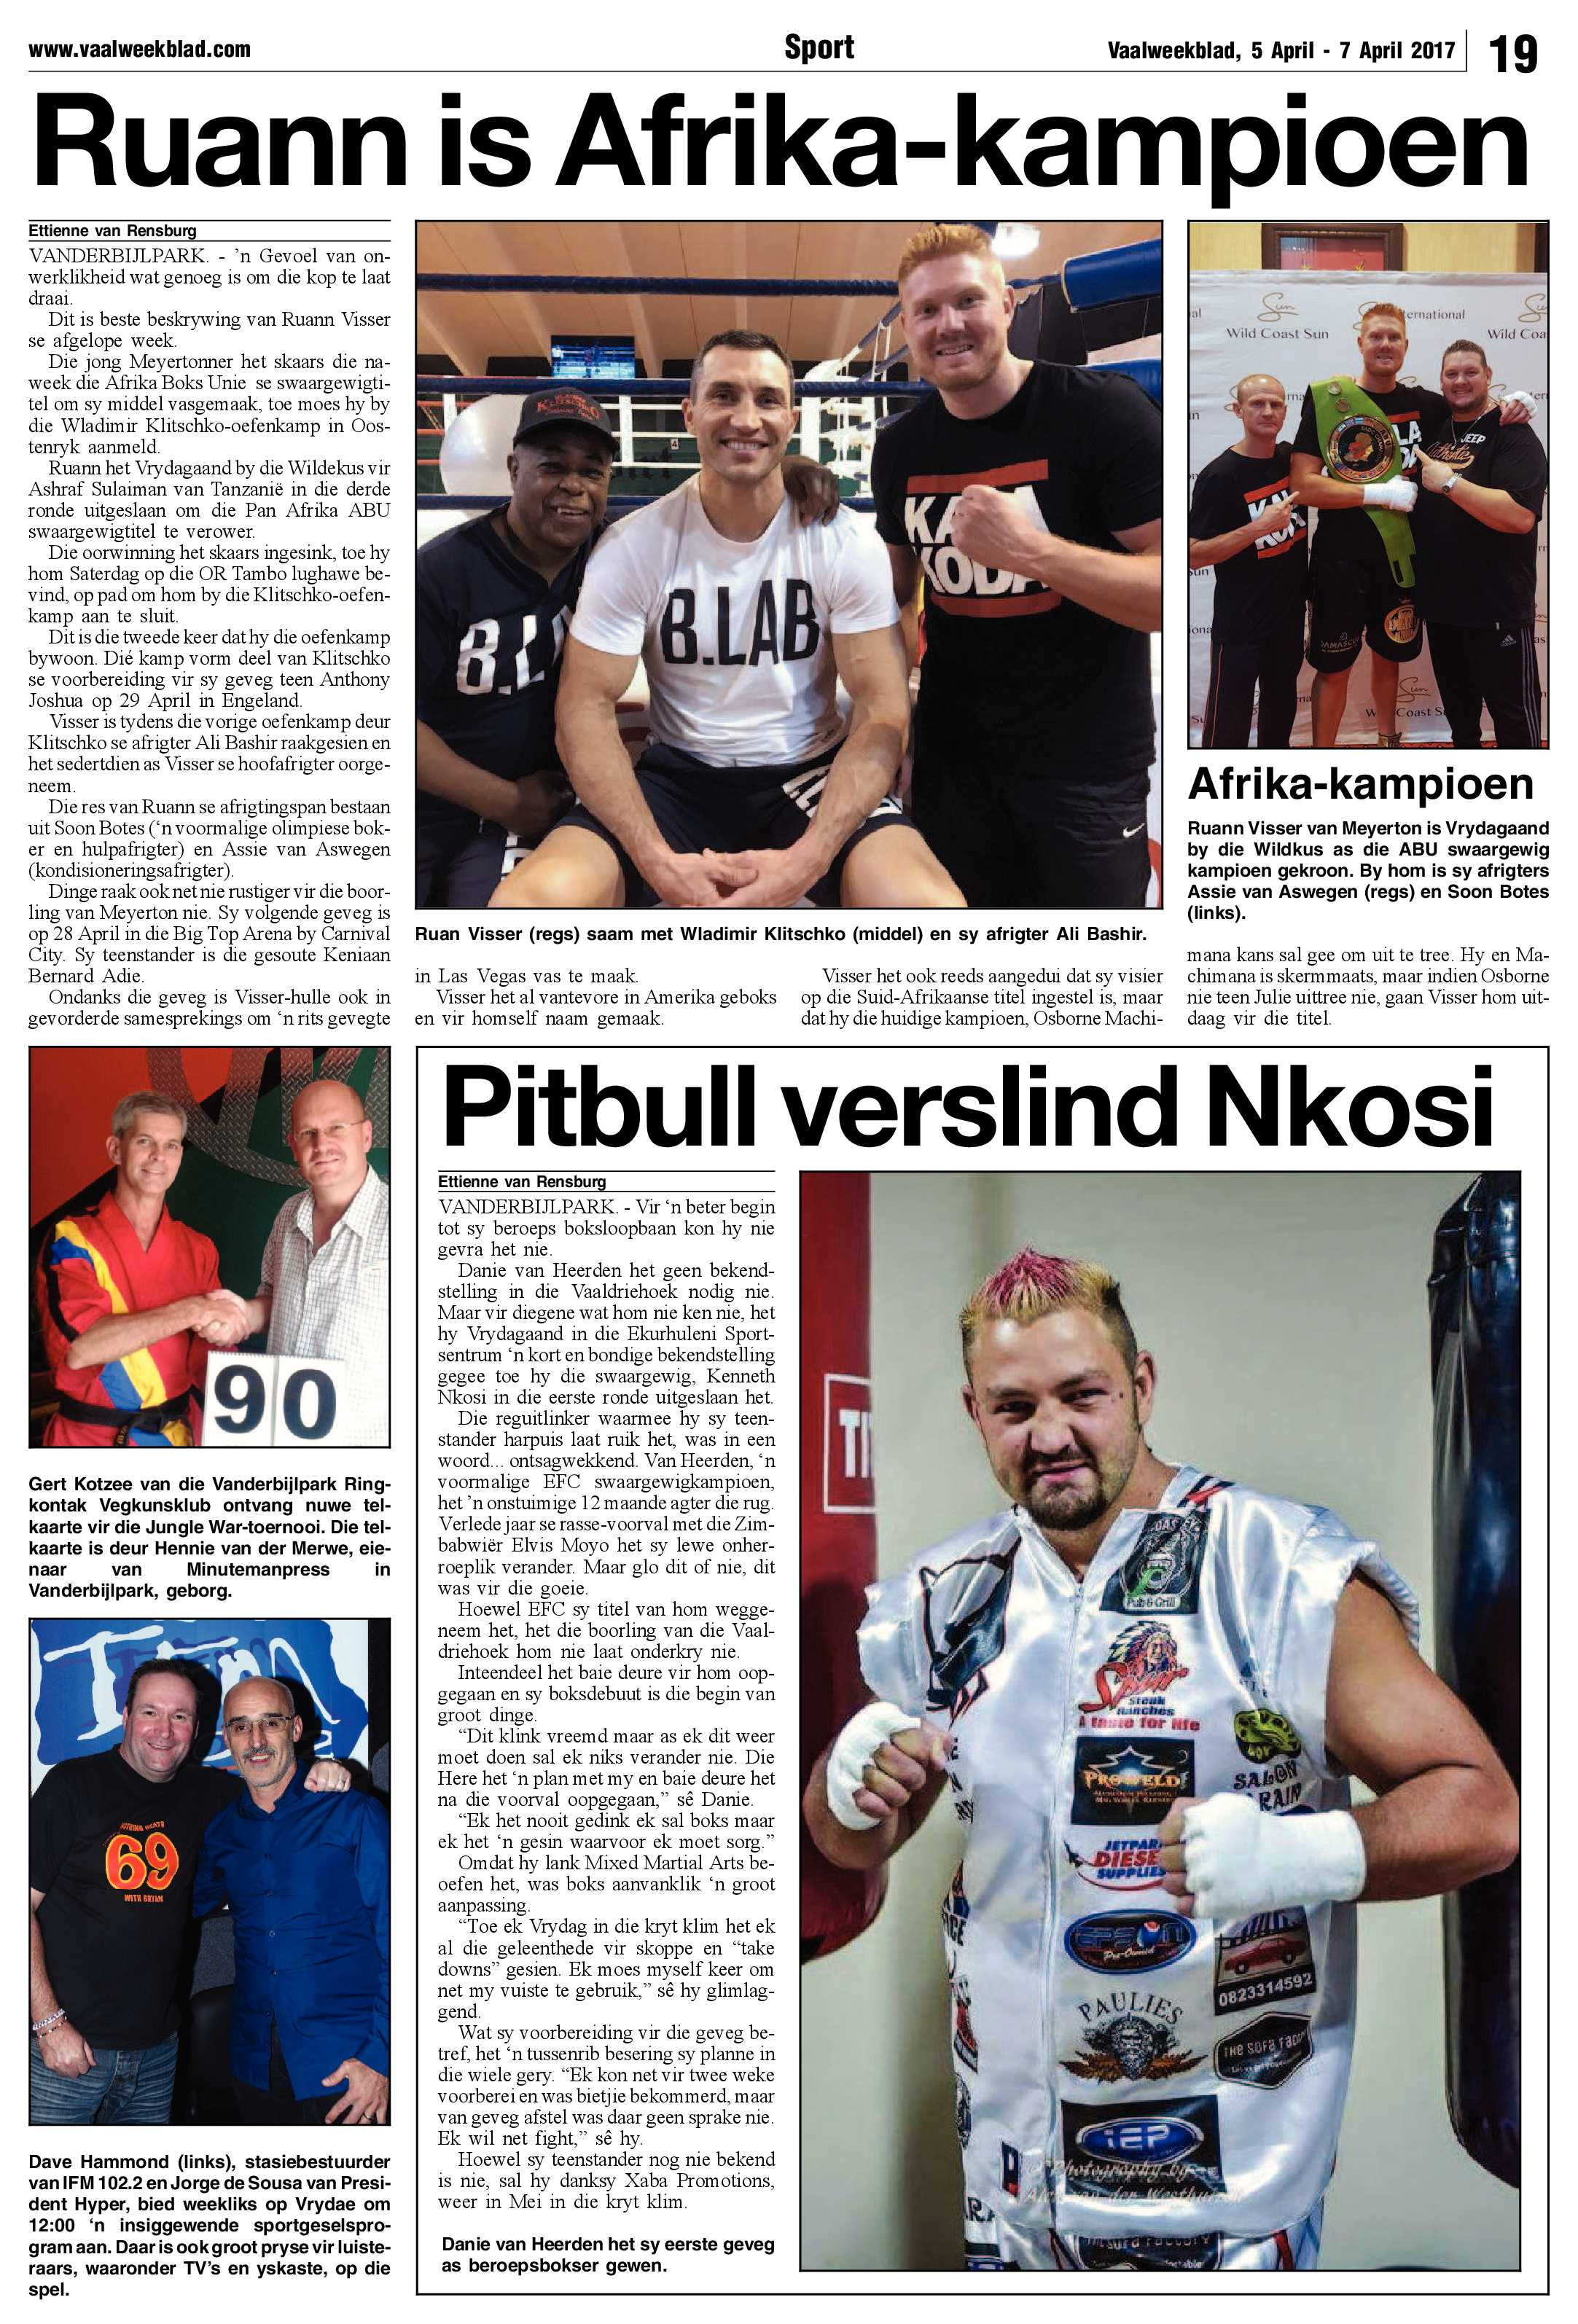 vaalweekblad-5-7-april-2017-2-epapers-page-19